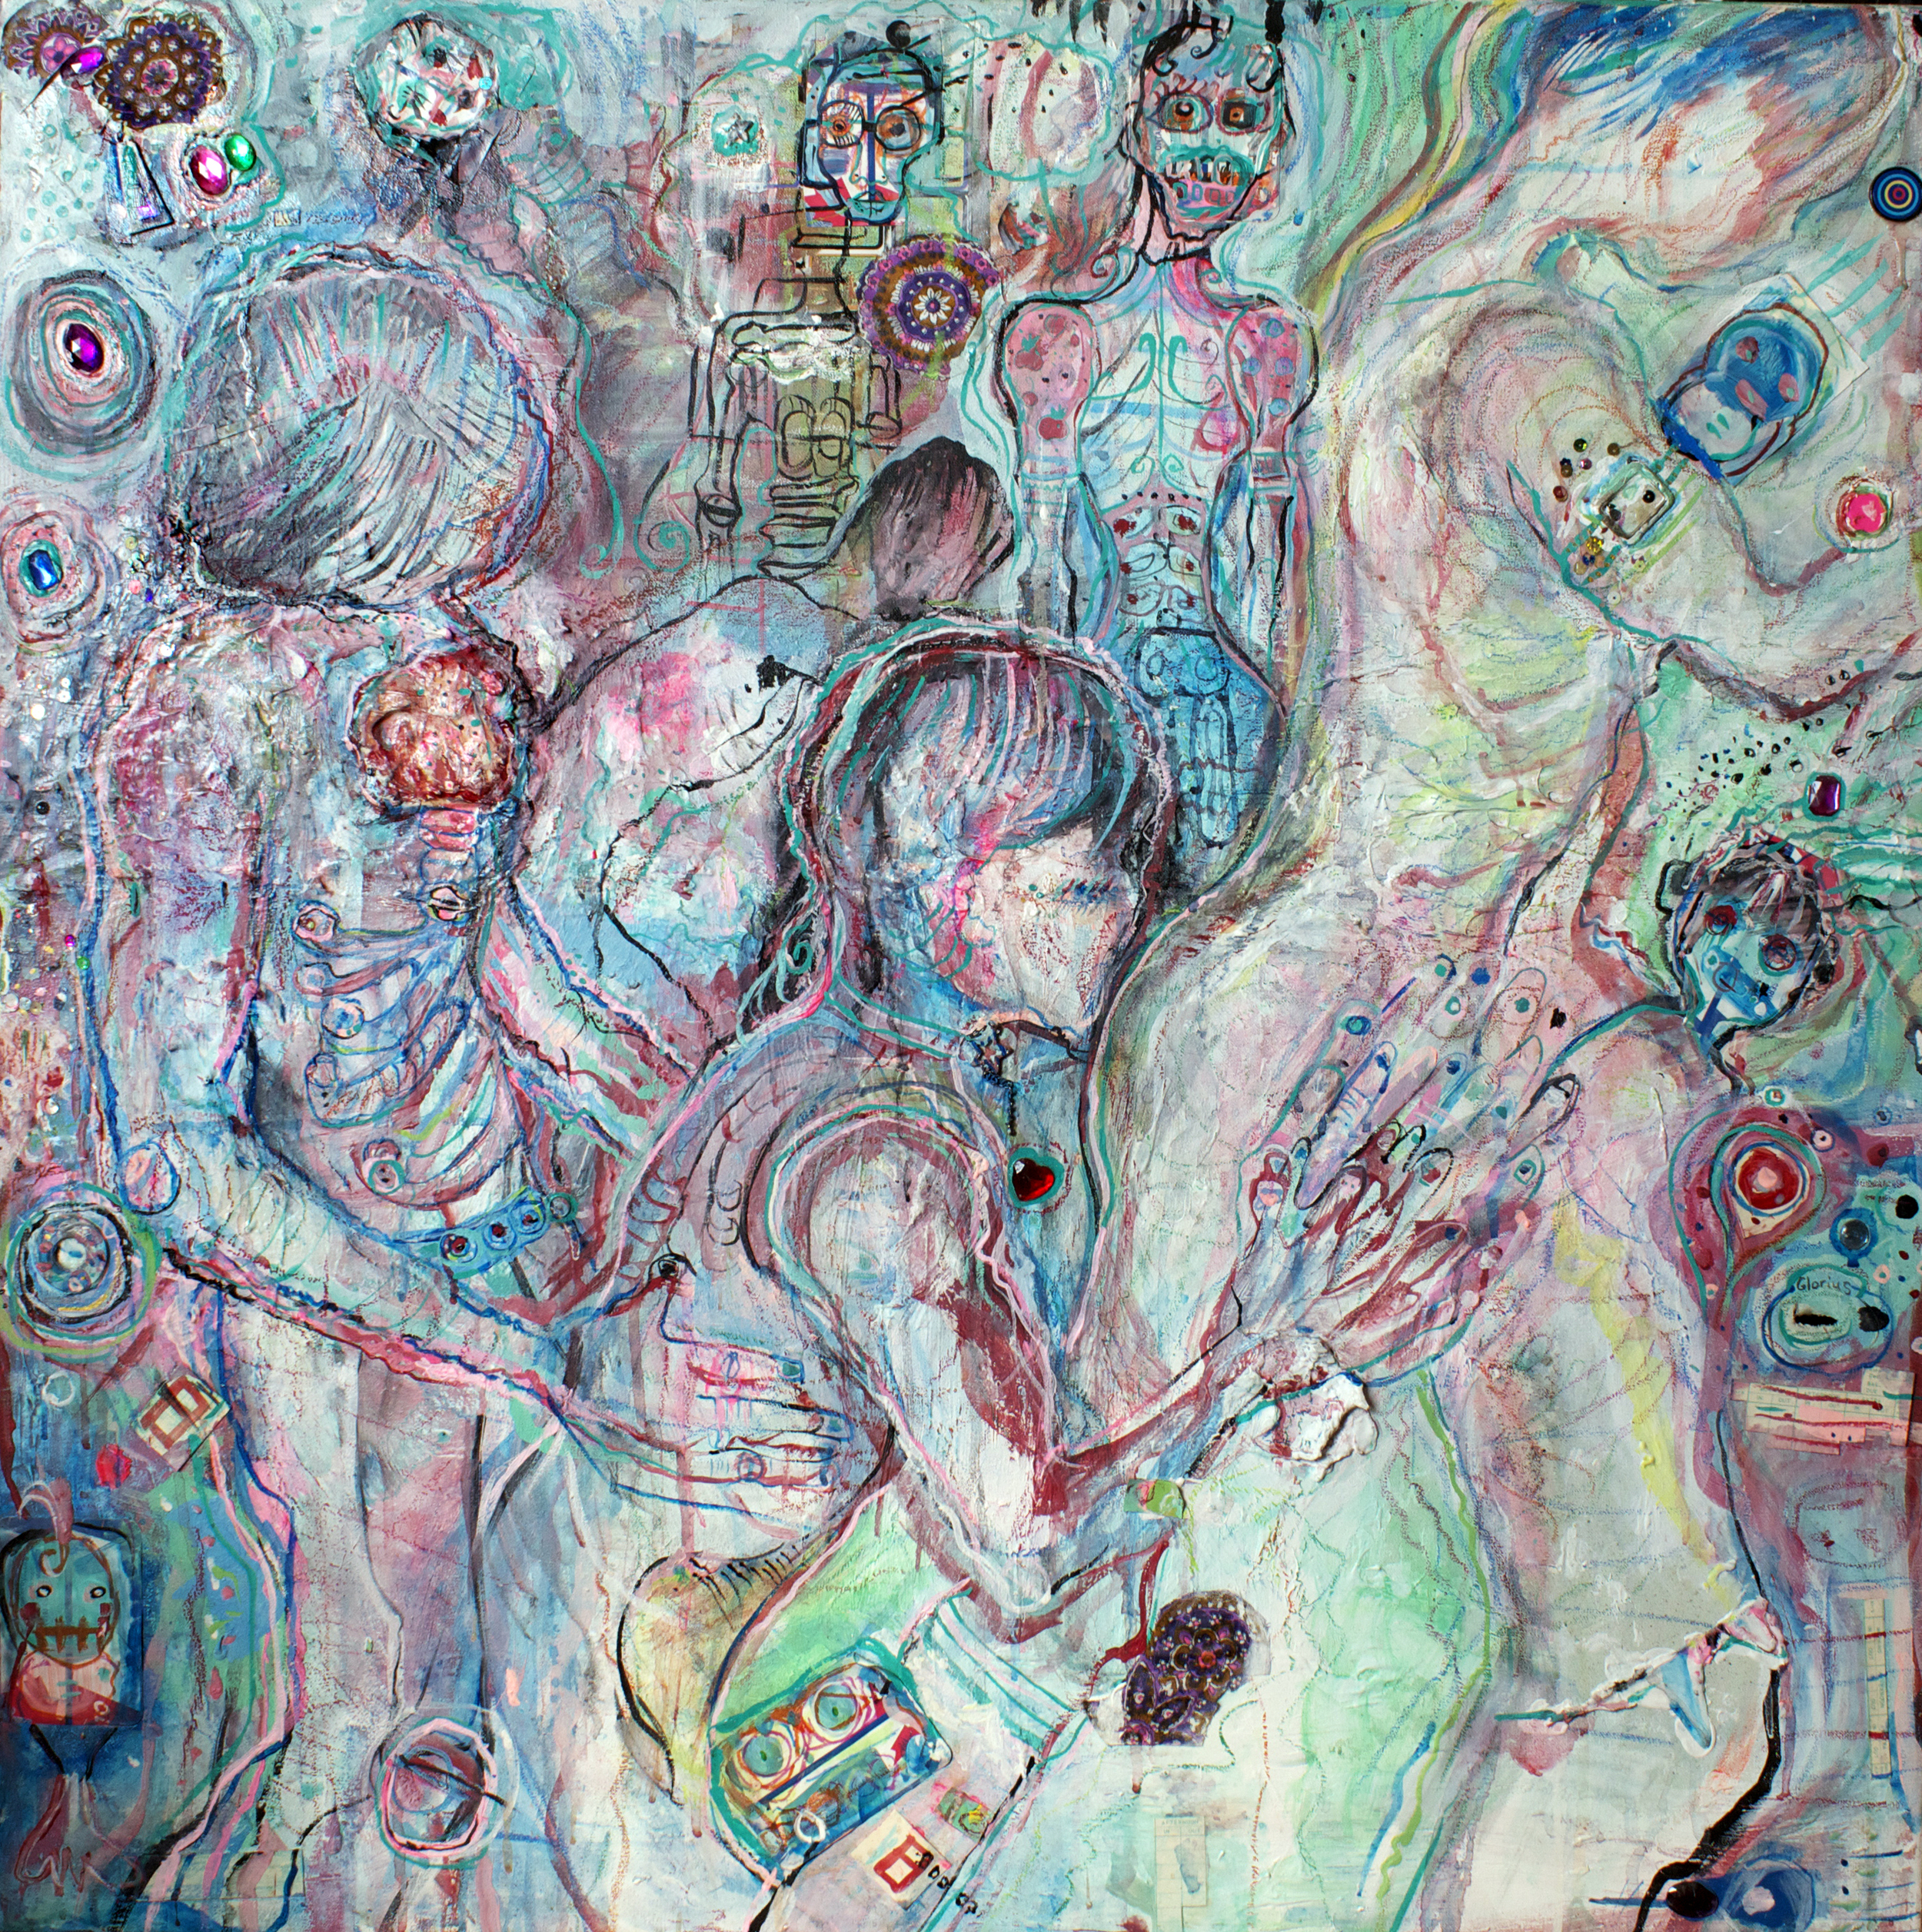 Stahlrohr, mixed media on canvas, 3x3ft, 2007